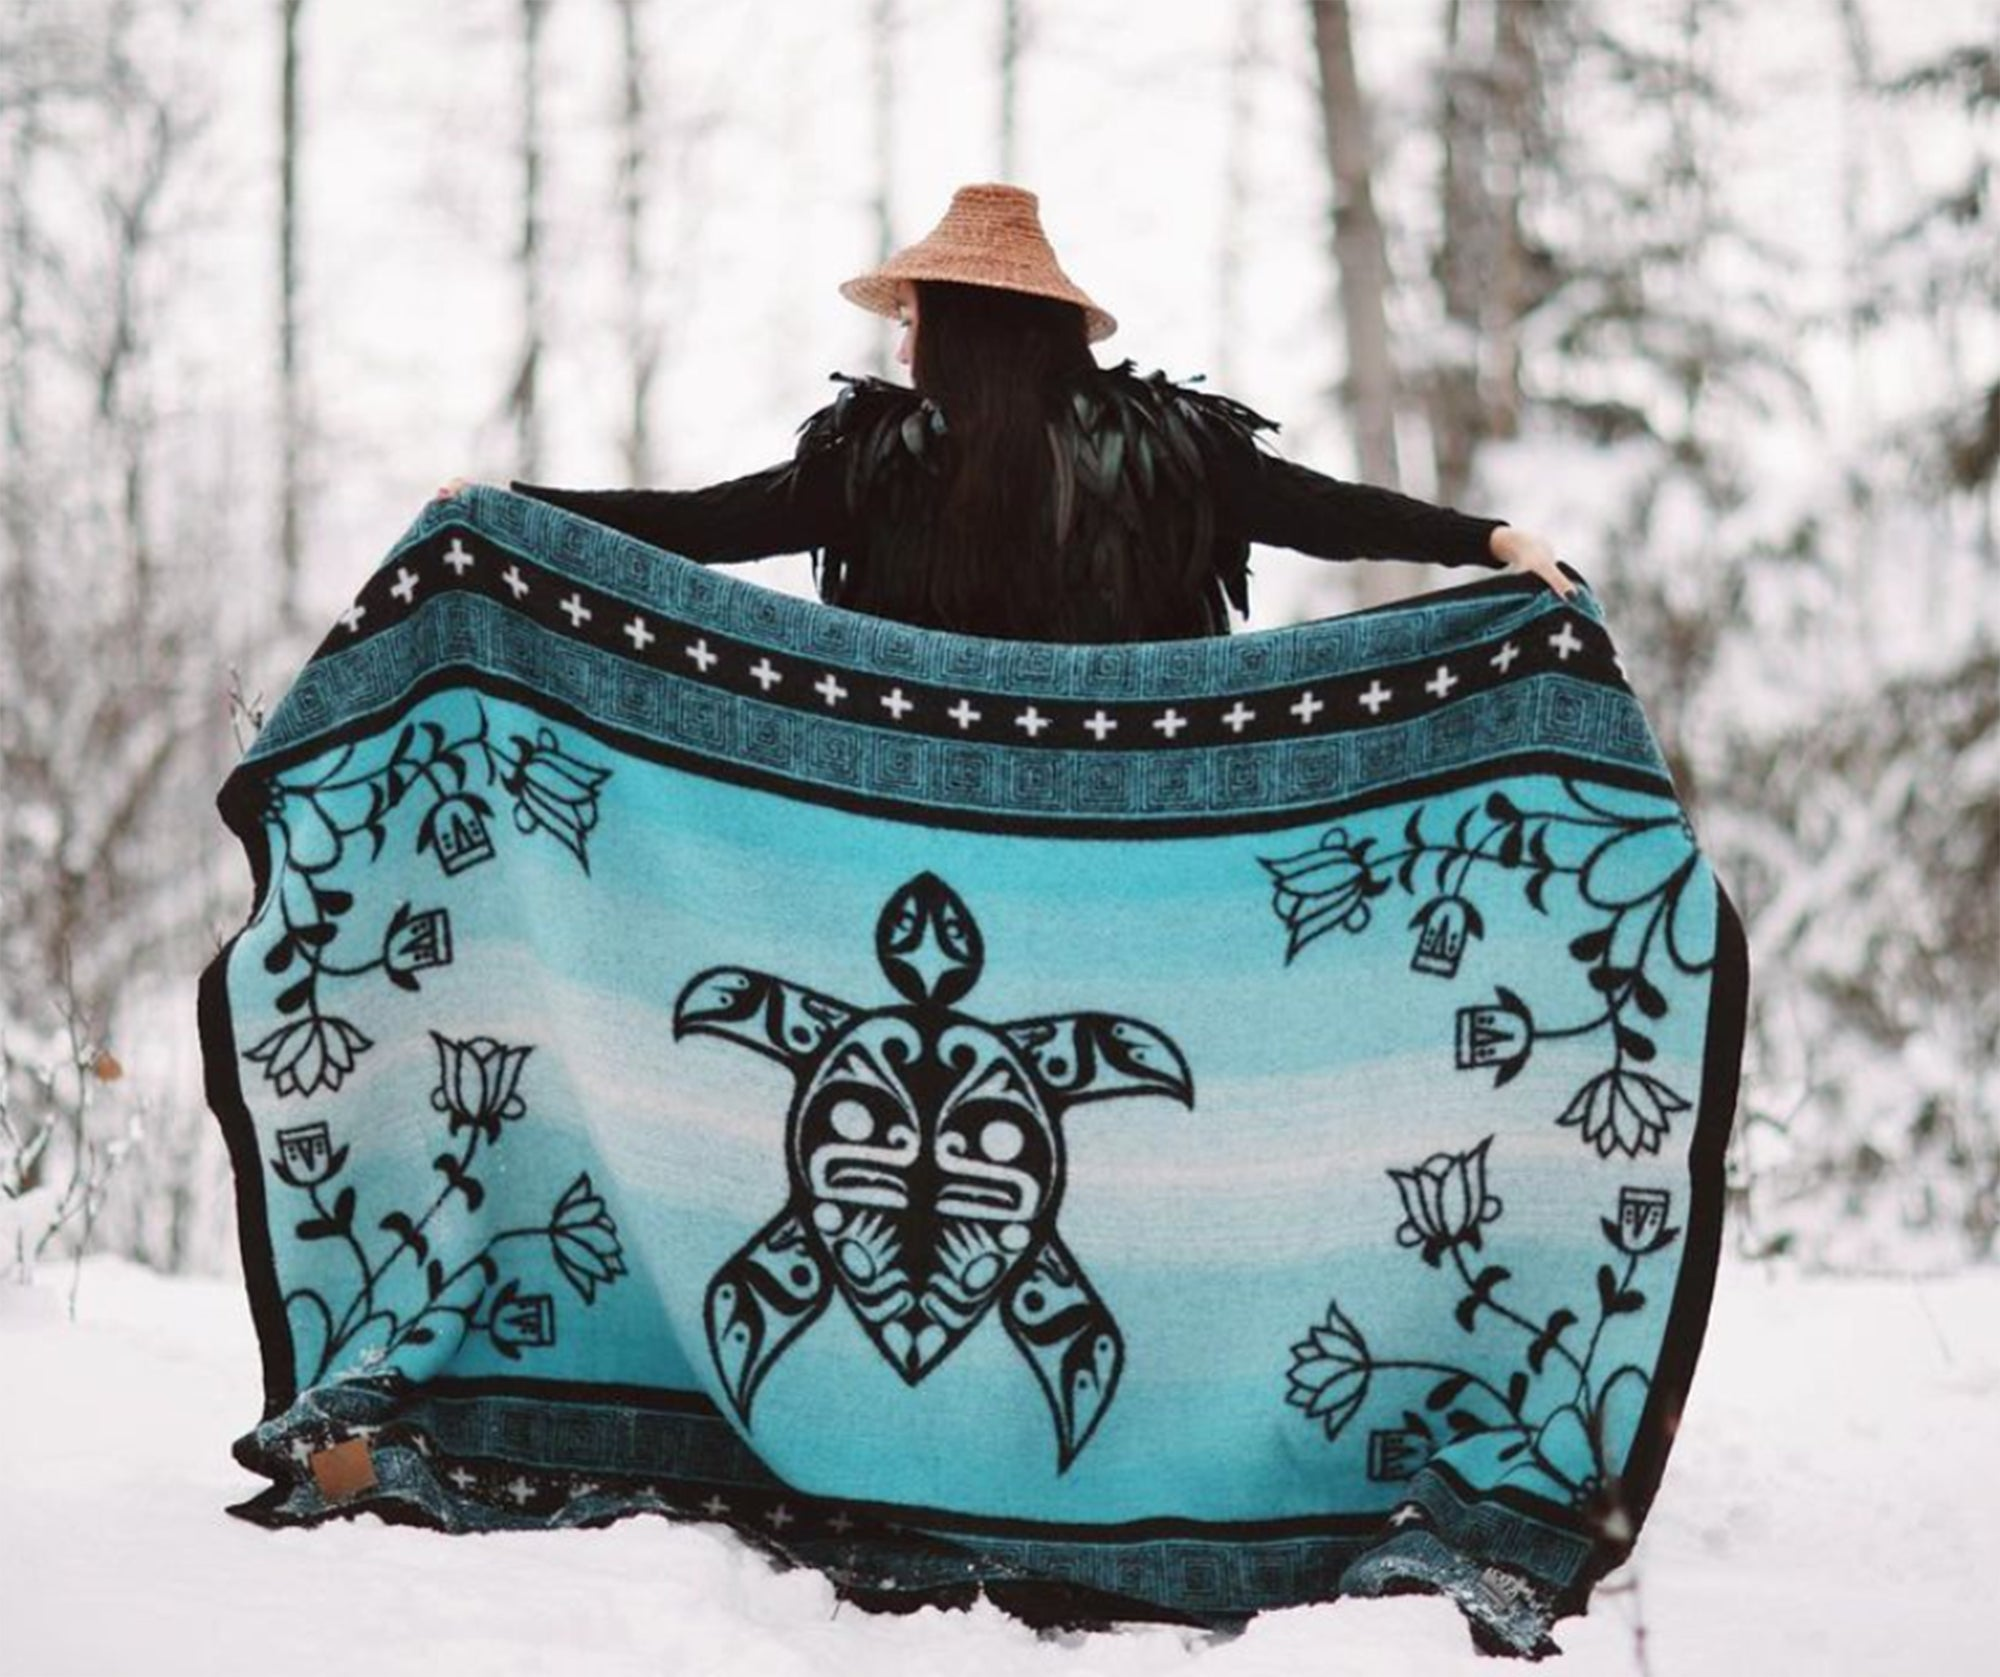 Woman-with-cedar-hat-holds-turquoise-and-black-turtle-design-wool-blanket-stretched-out-behind-her